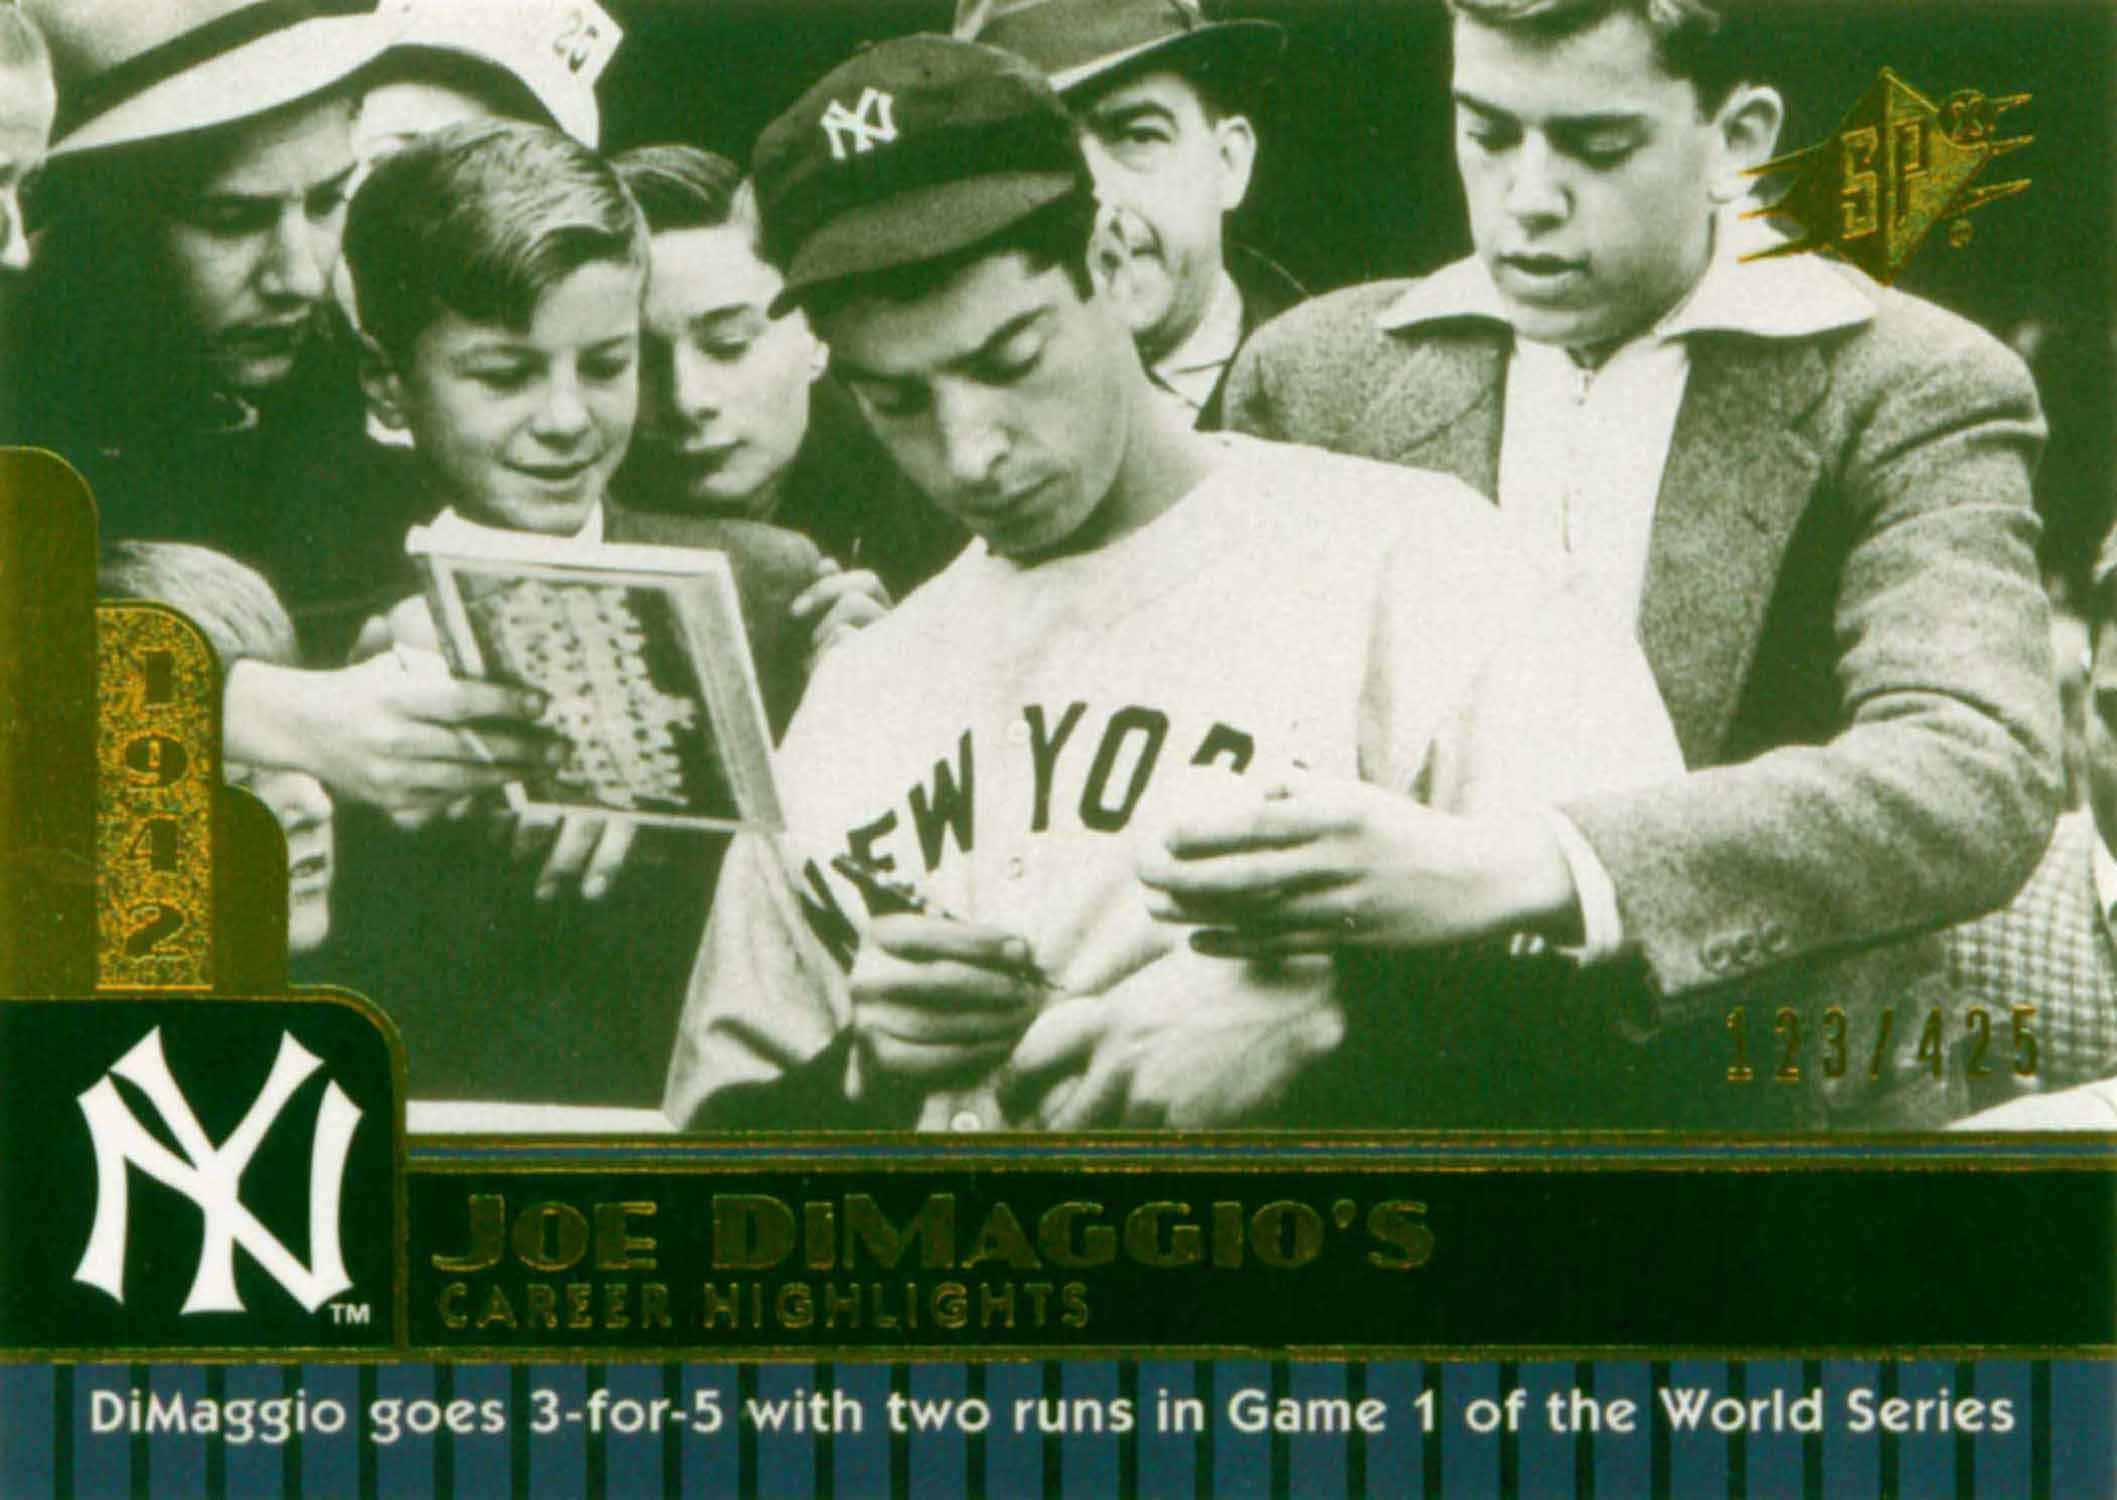 2009 SPx Joe DiMaggio Career Highlights